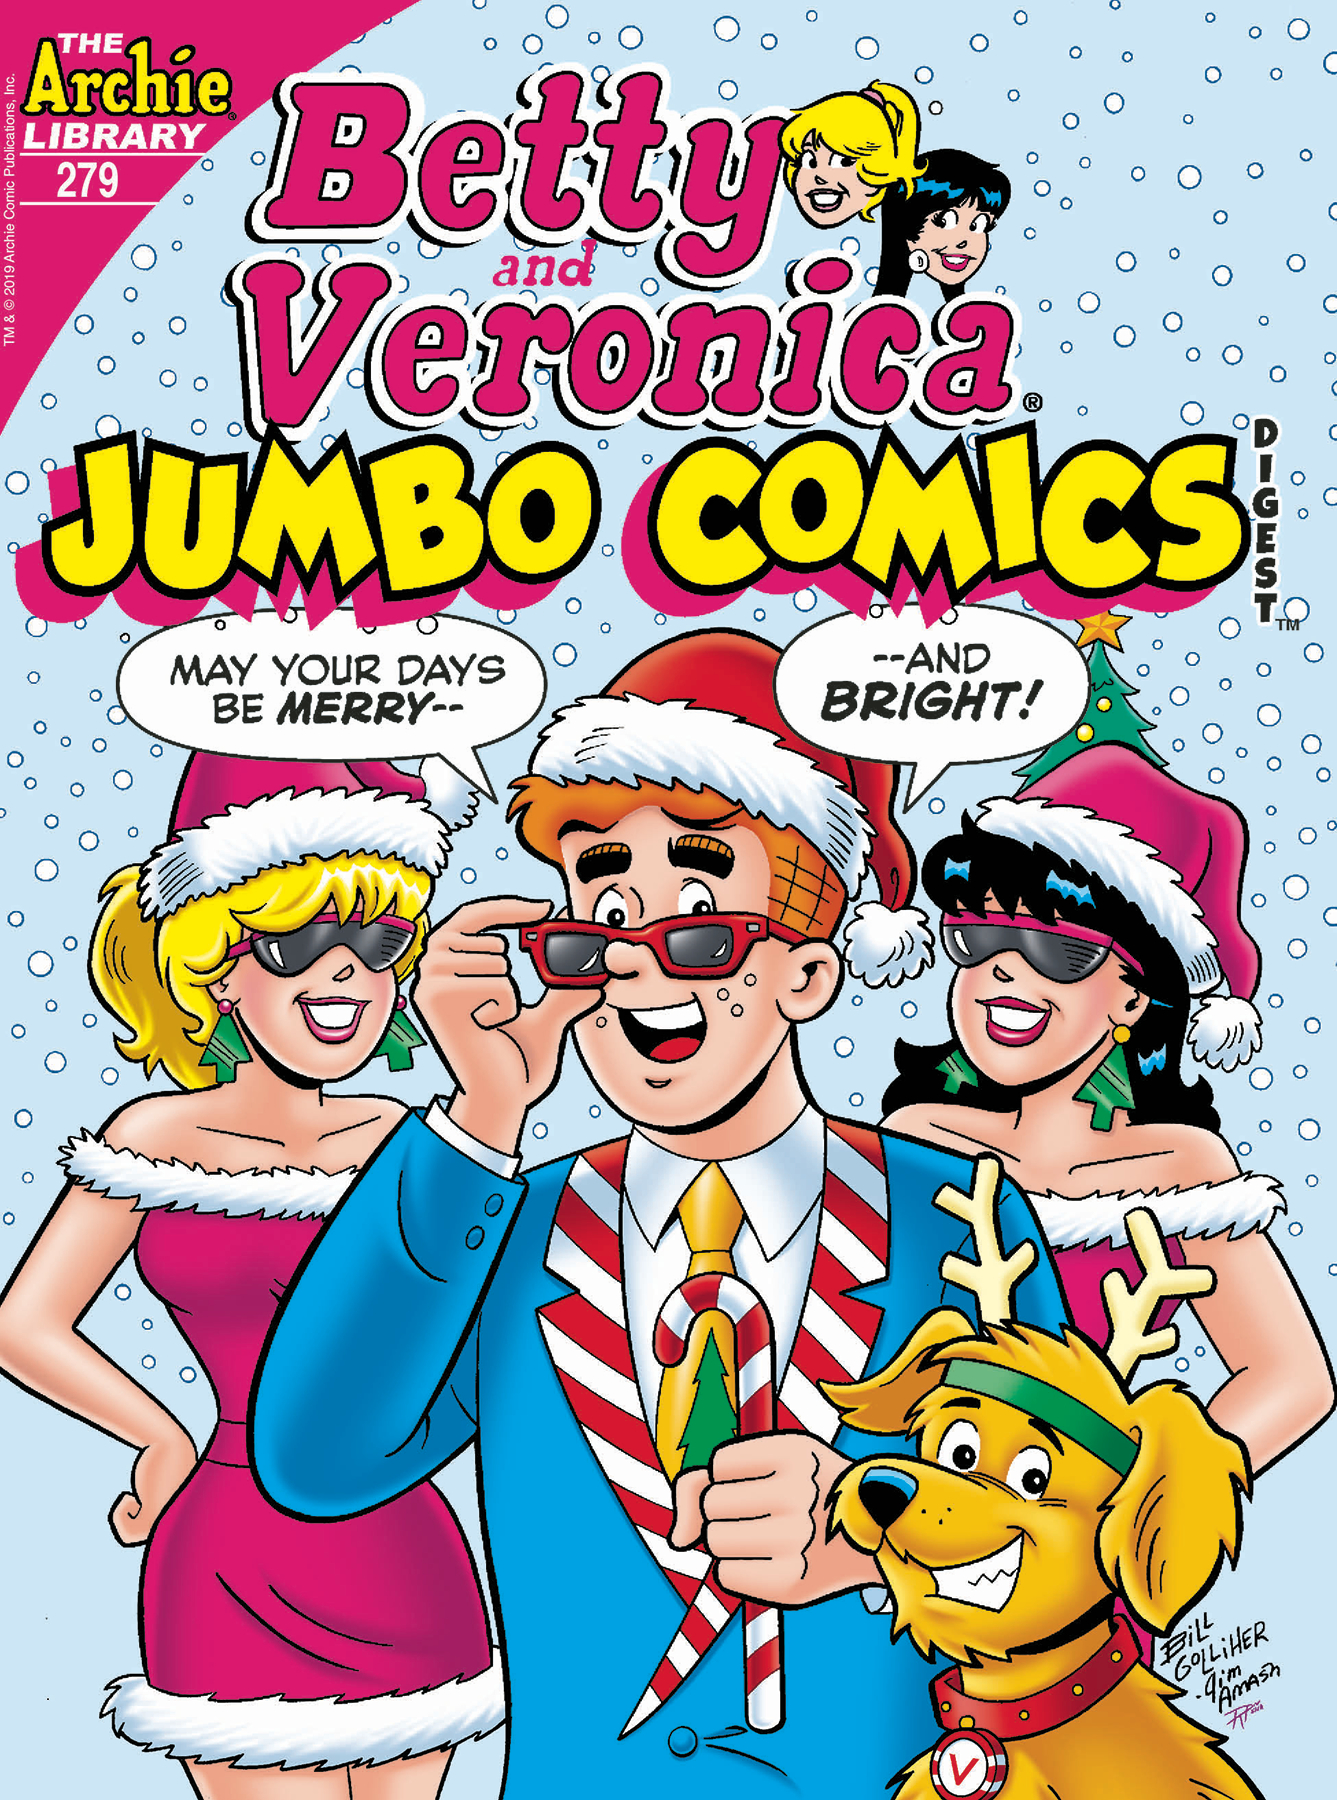 BETTY & VERONICA JUMBO COMICS DIGEST #279